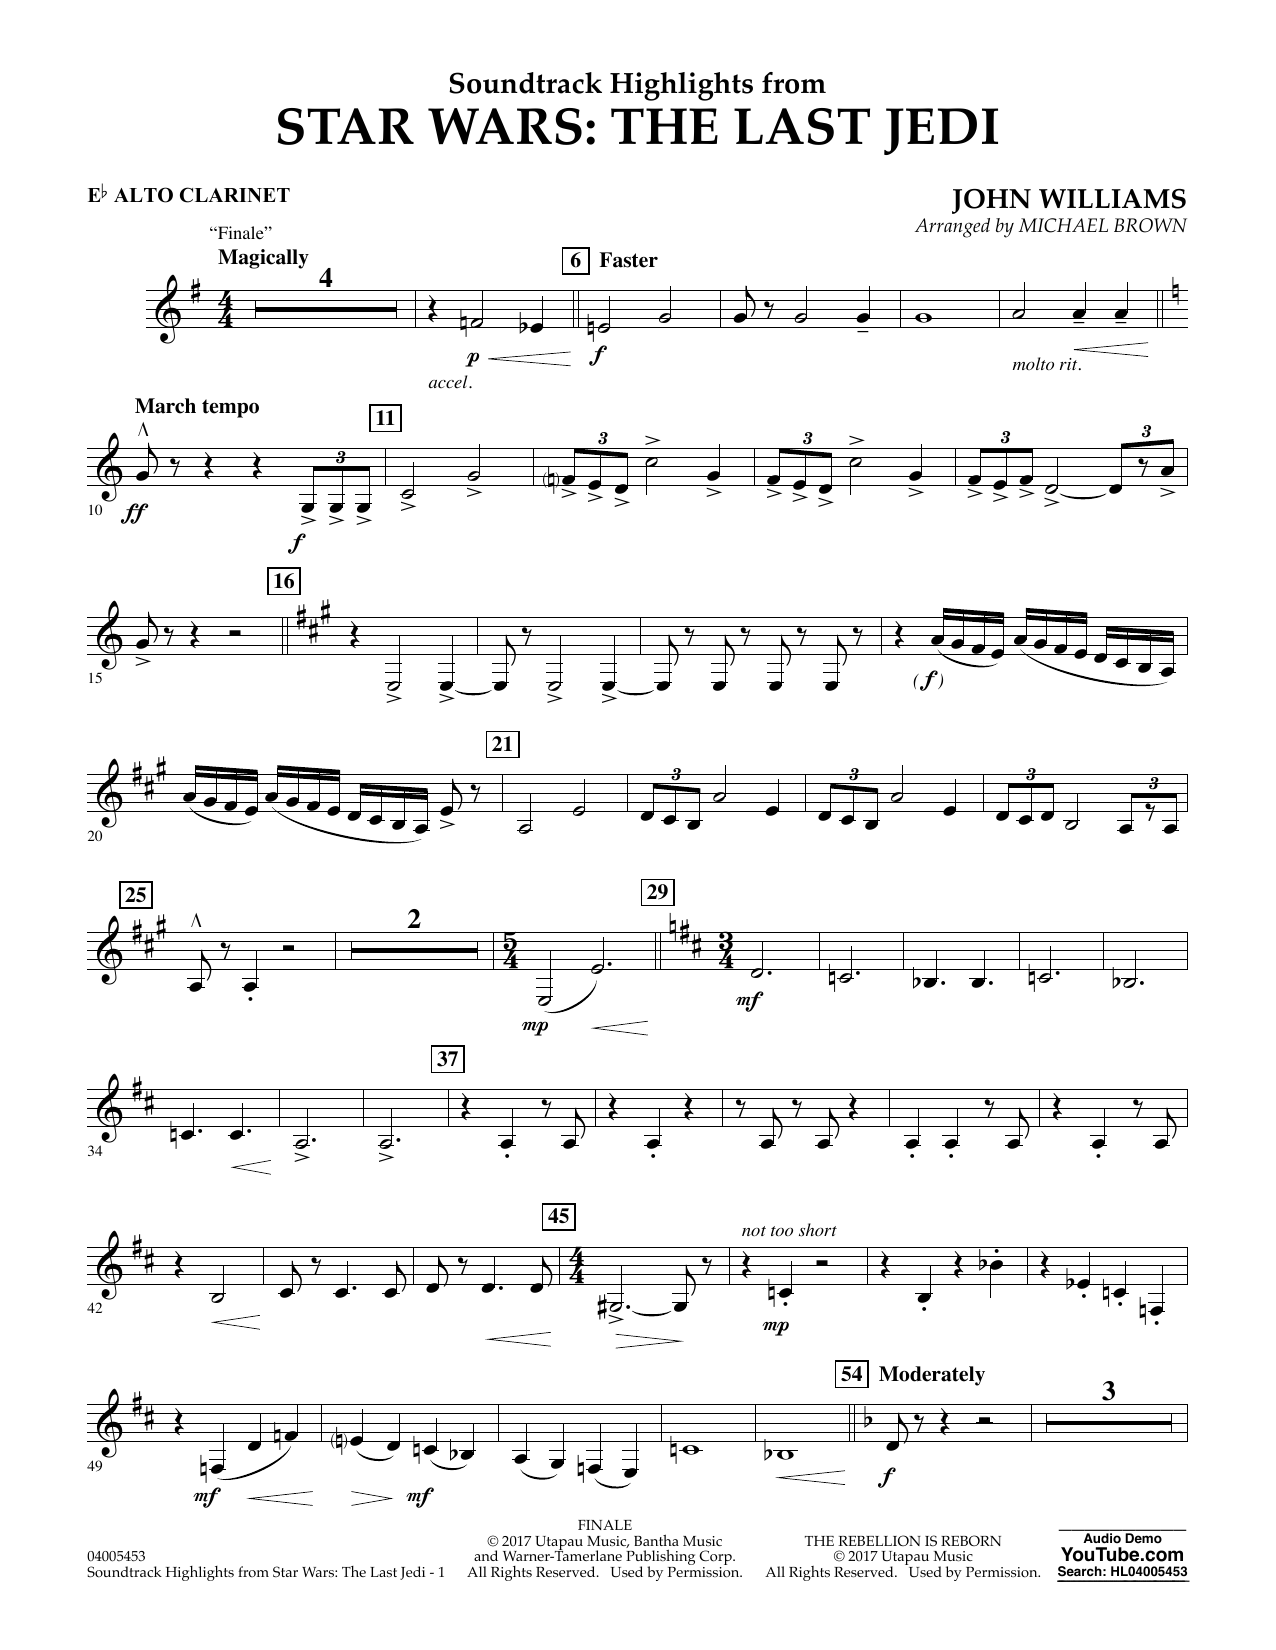 Michael Brown Soundtrack Highlights from Star Wars: The Last Jedi - Eb Alto Clarinet sheet music notes and chords. Download Printable PDF.